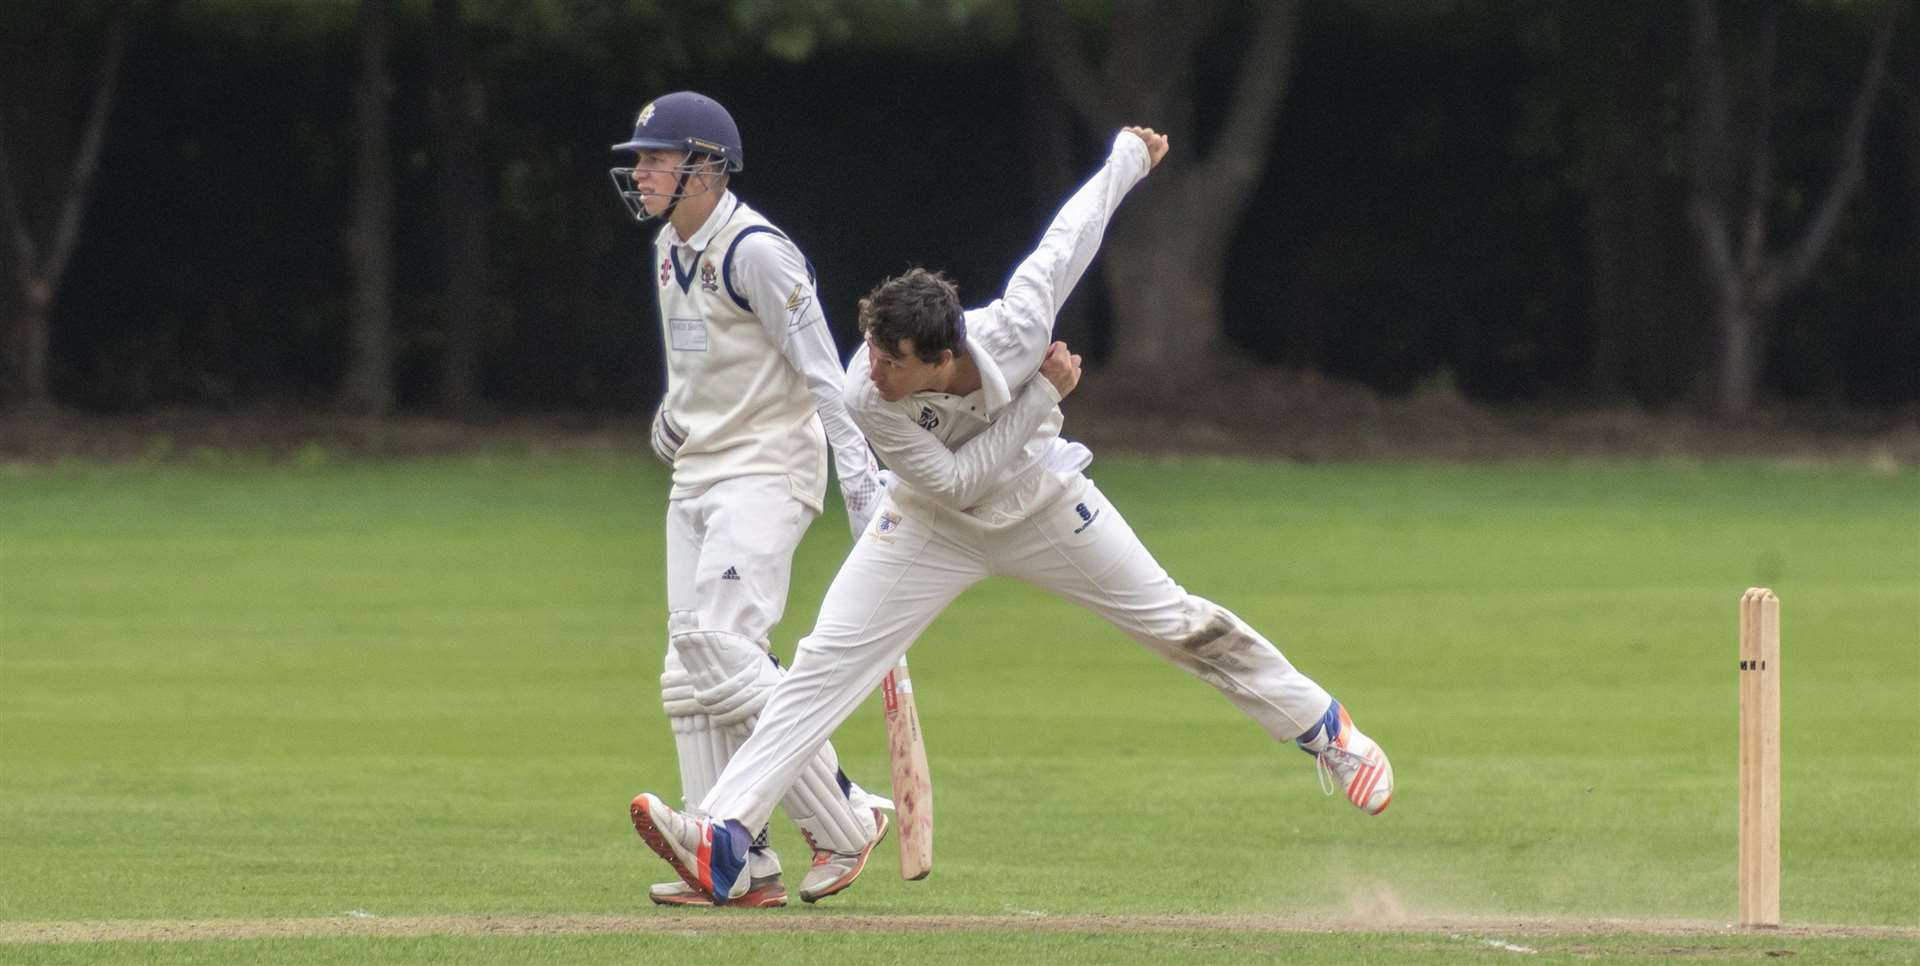 Henry Campbell was in the wickets for Cambridge. Picture: Keith Heppell